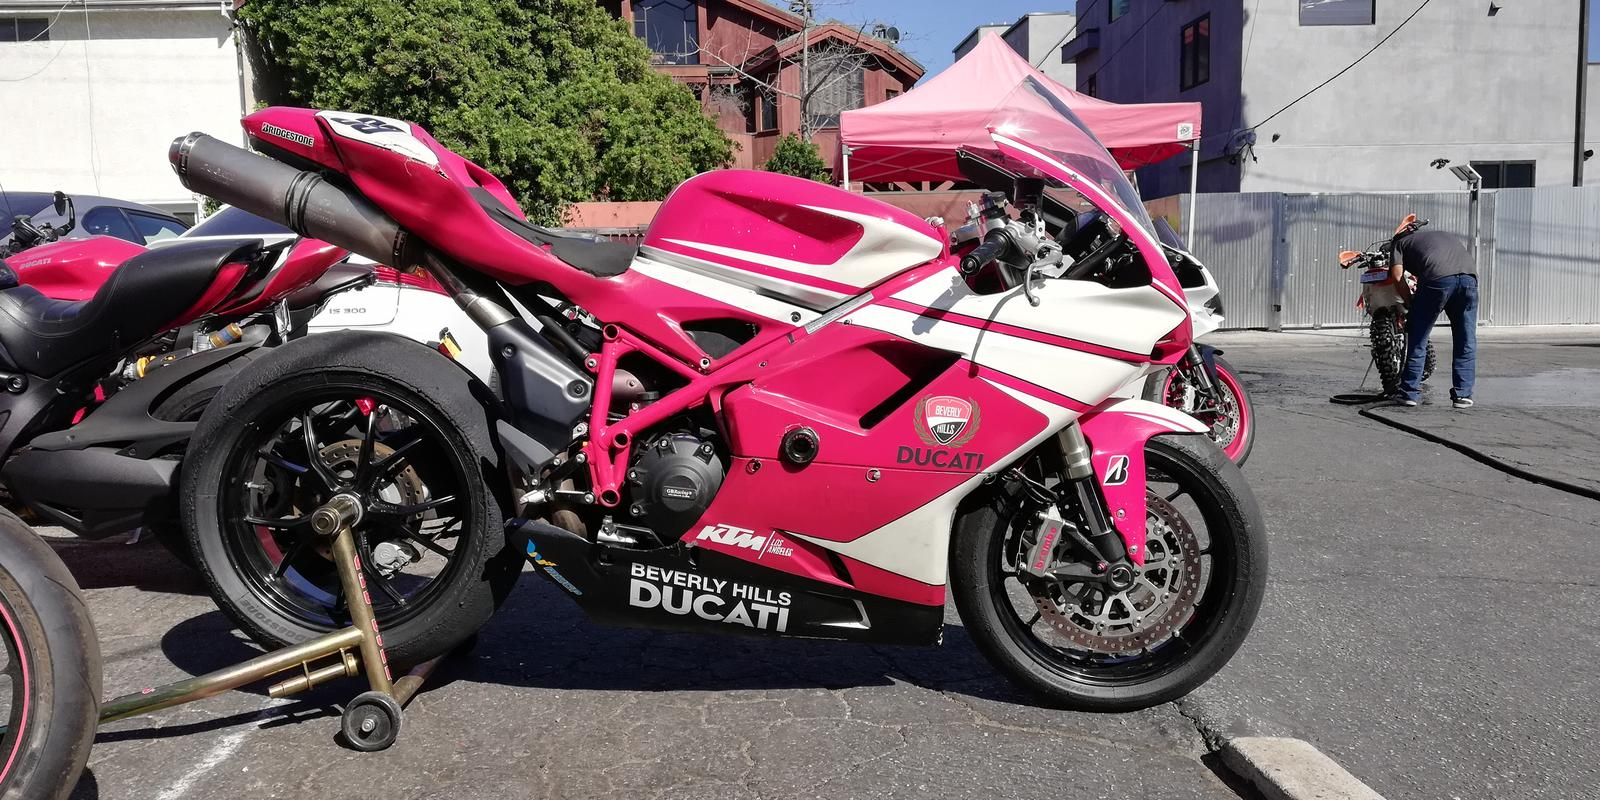 Peachy 2013 Ducati Superbike 848 Evo For Sale In Los Angeles Ca Pabps2019 Chair Design Images Pabps2019Com